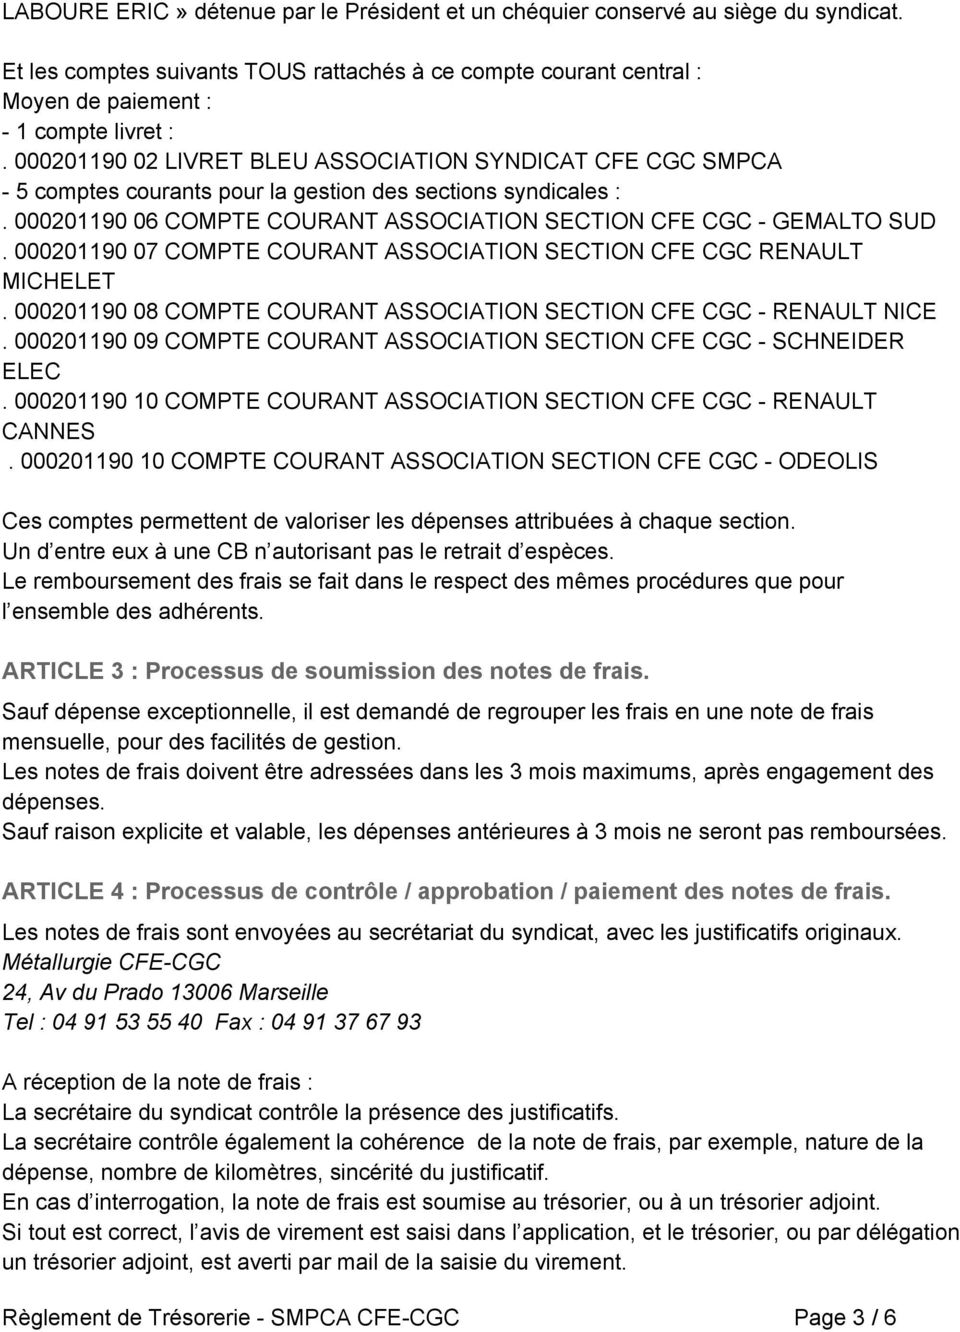 000201190 07 COMPTE COURANT ASSOCIATION SECTION CFE CGC RENAULT MICHELET. 000201190 08 COMPTE COURANT ASSOCIATION SECTION CFE CGC RENAULT NICE.